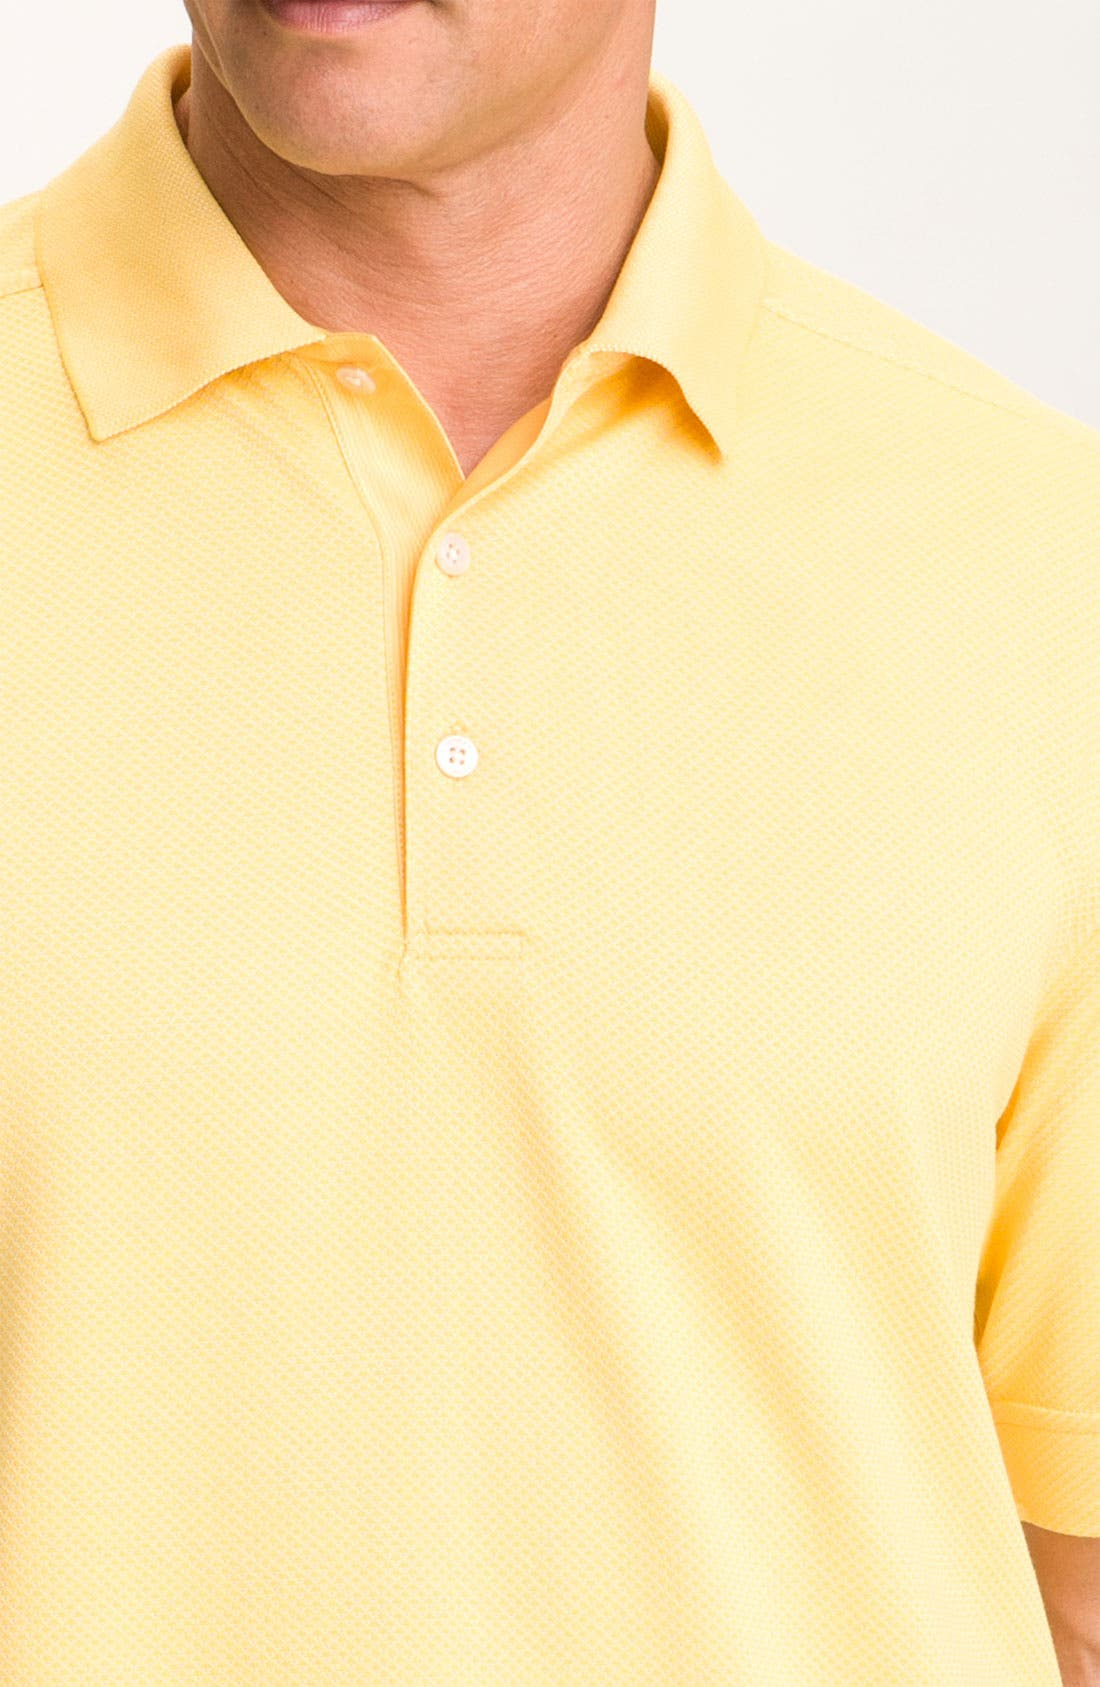 Alternate Image 3  - Cutter & Buck 'Nano' DryTec Golf Polo (Big & Tall)